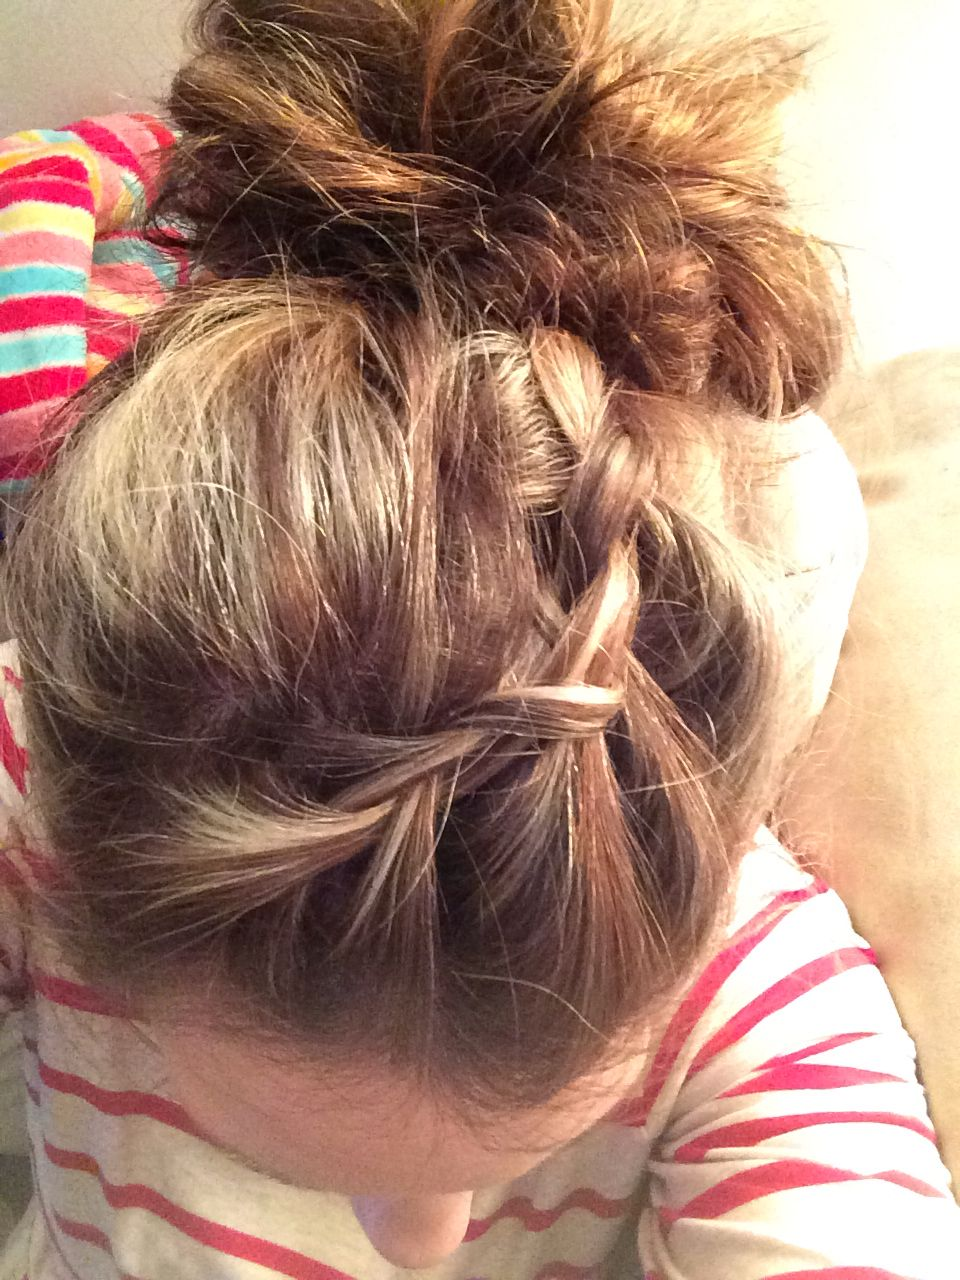 I decided to put blonde highlights back in my hair and put it into a messy bun with a front braid. It's my favorite color and style I've ever had my hair so far for casual, every day wear.